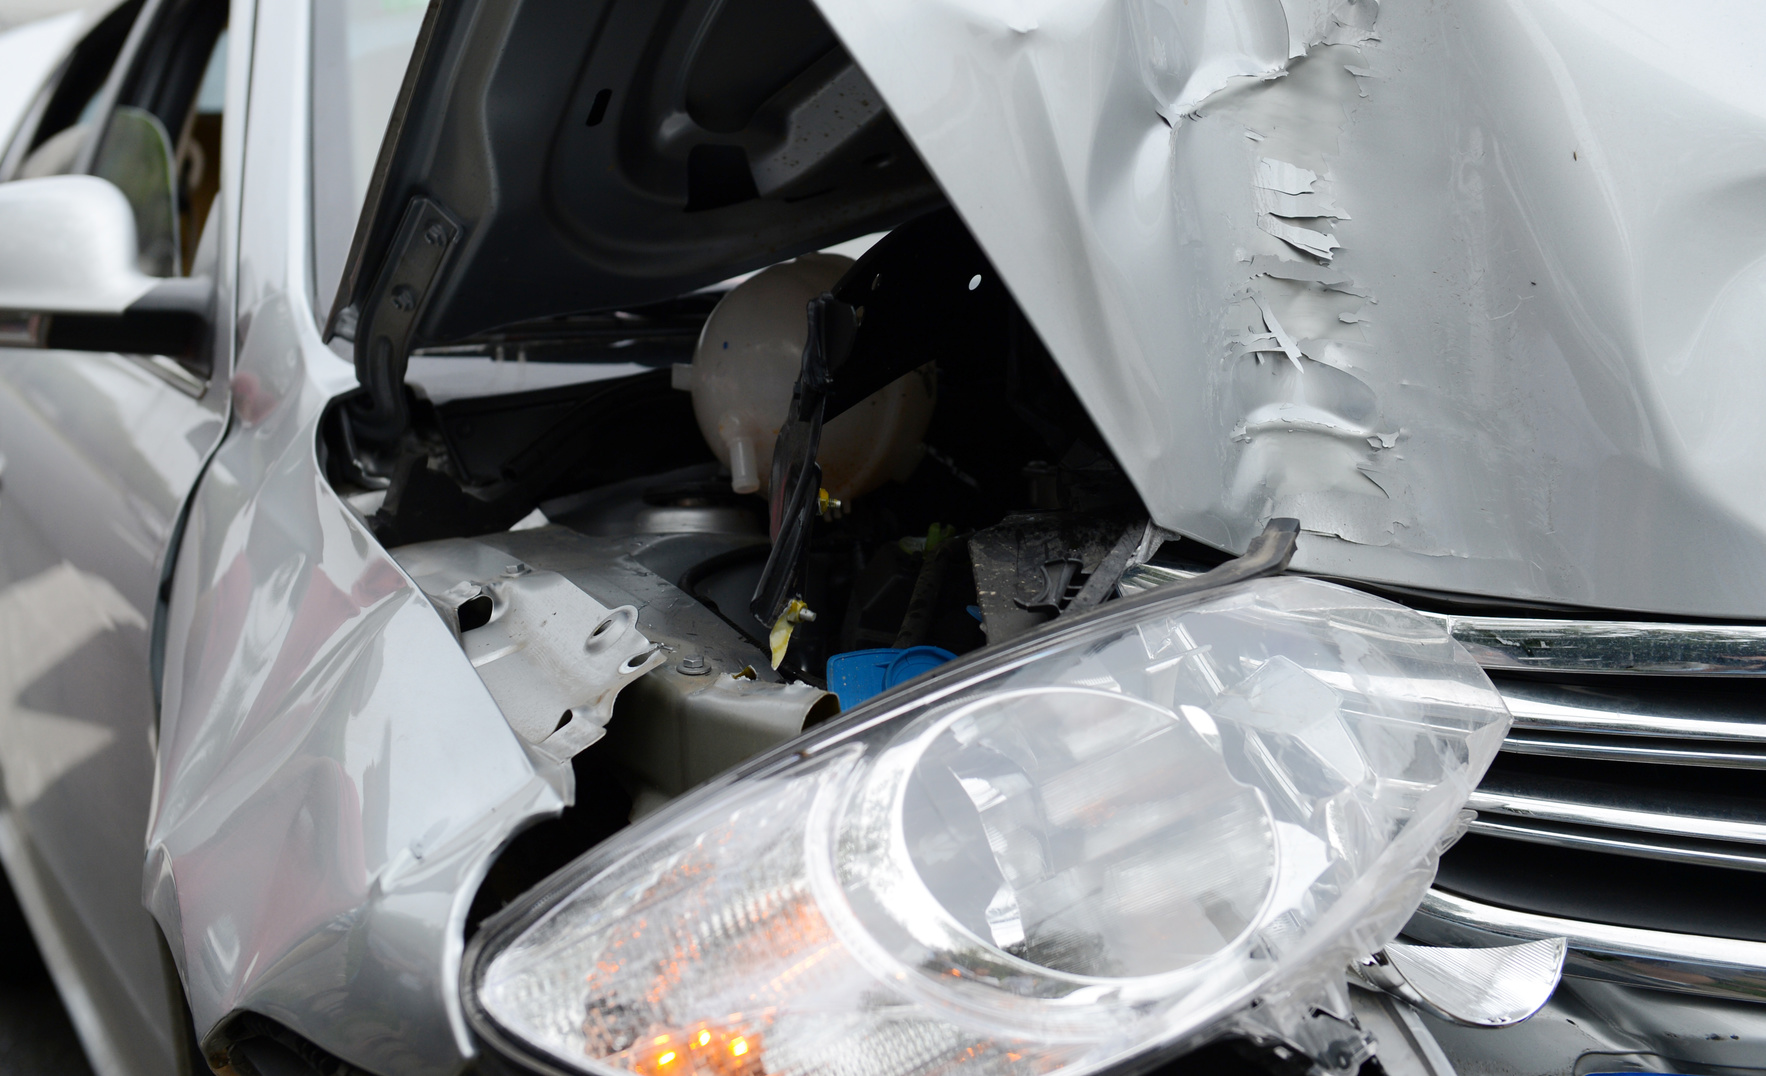 Head-on collision and if you need a top car accident attorney find one in Flint.